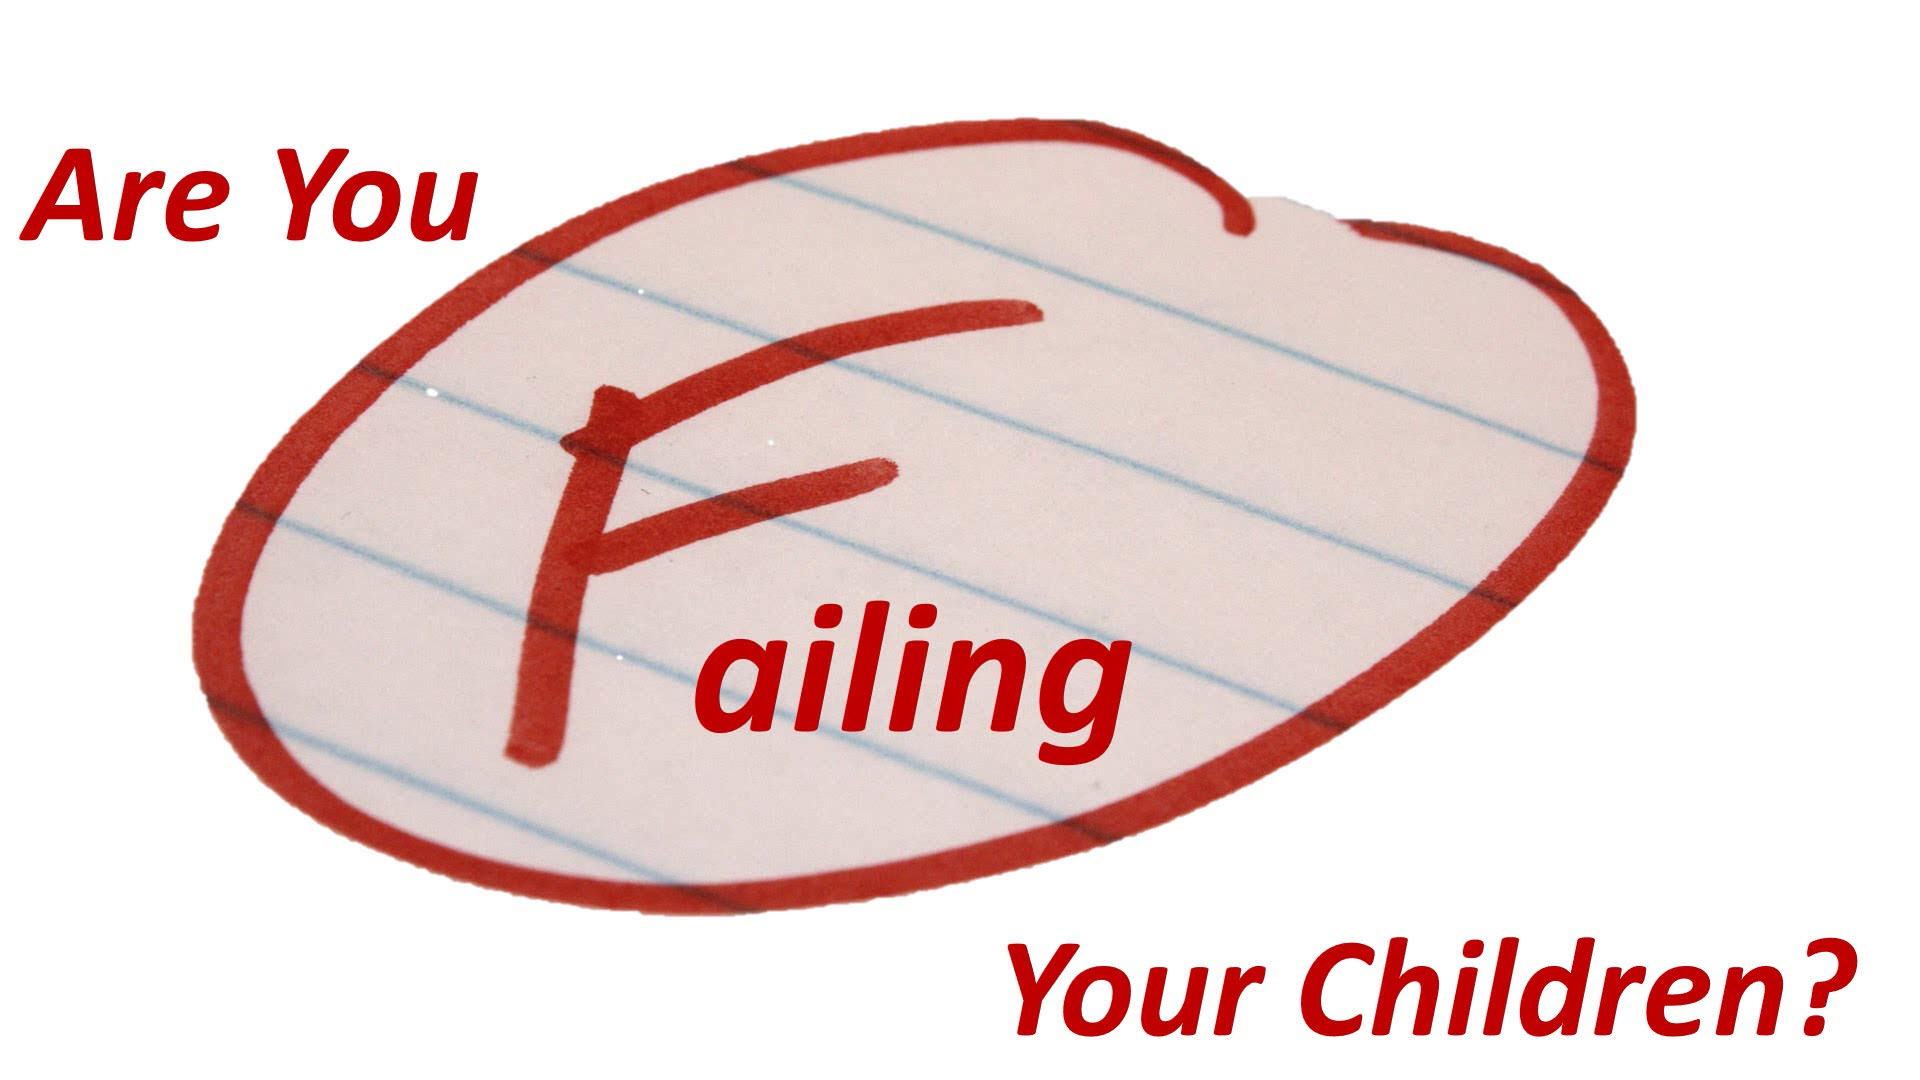 Are You Failing Your Children?